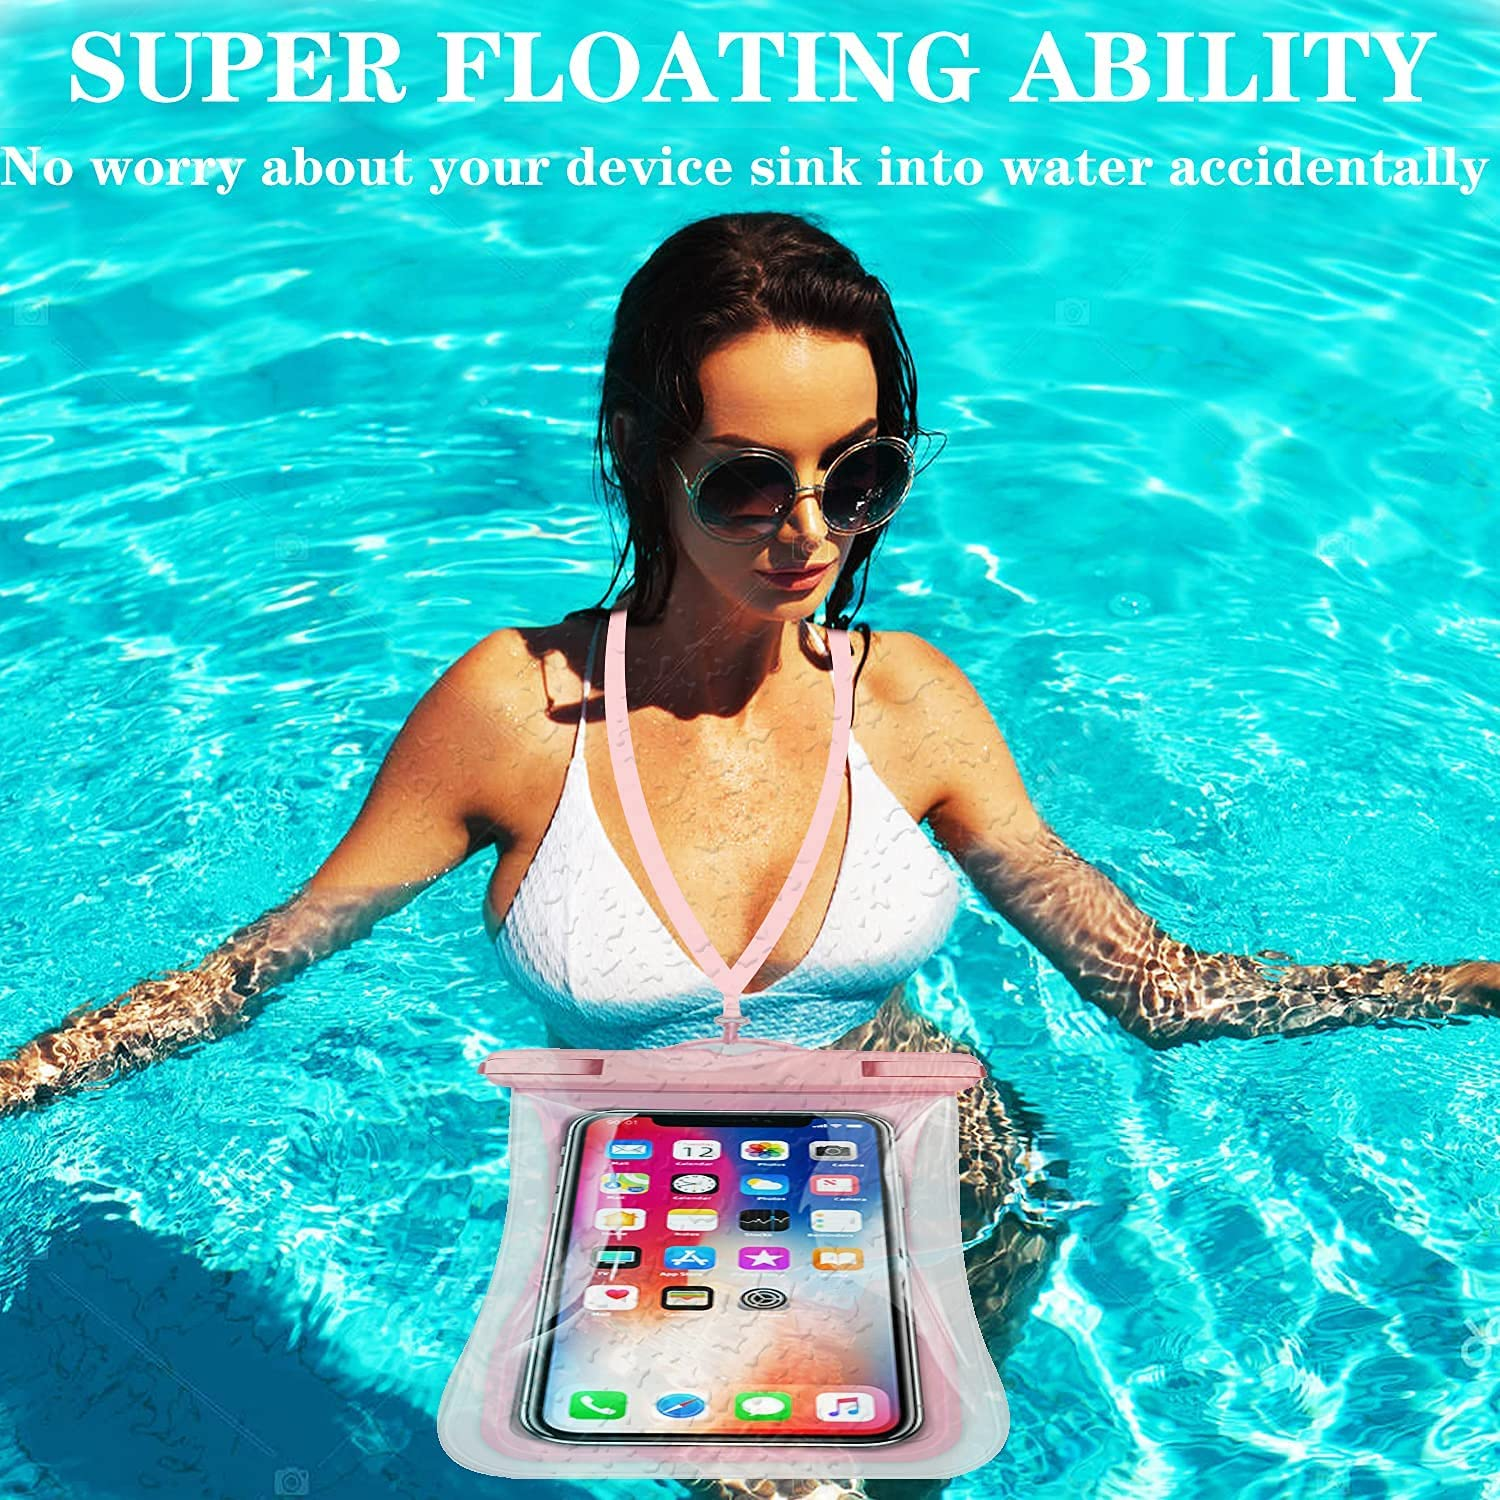 Waterproof Cell Phone Pouch, Floating Waterproof Phone Case IPX8 Underwater Dry Bag with Lanyard for iPhone 12/12 Pro Max/11/11 Pro/SE/XS/XR/8 Galaxy up to 7.87